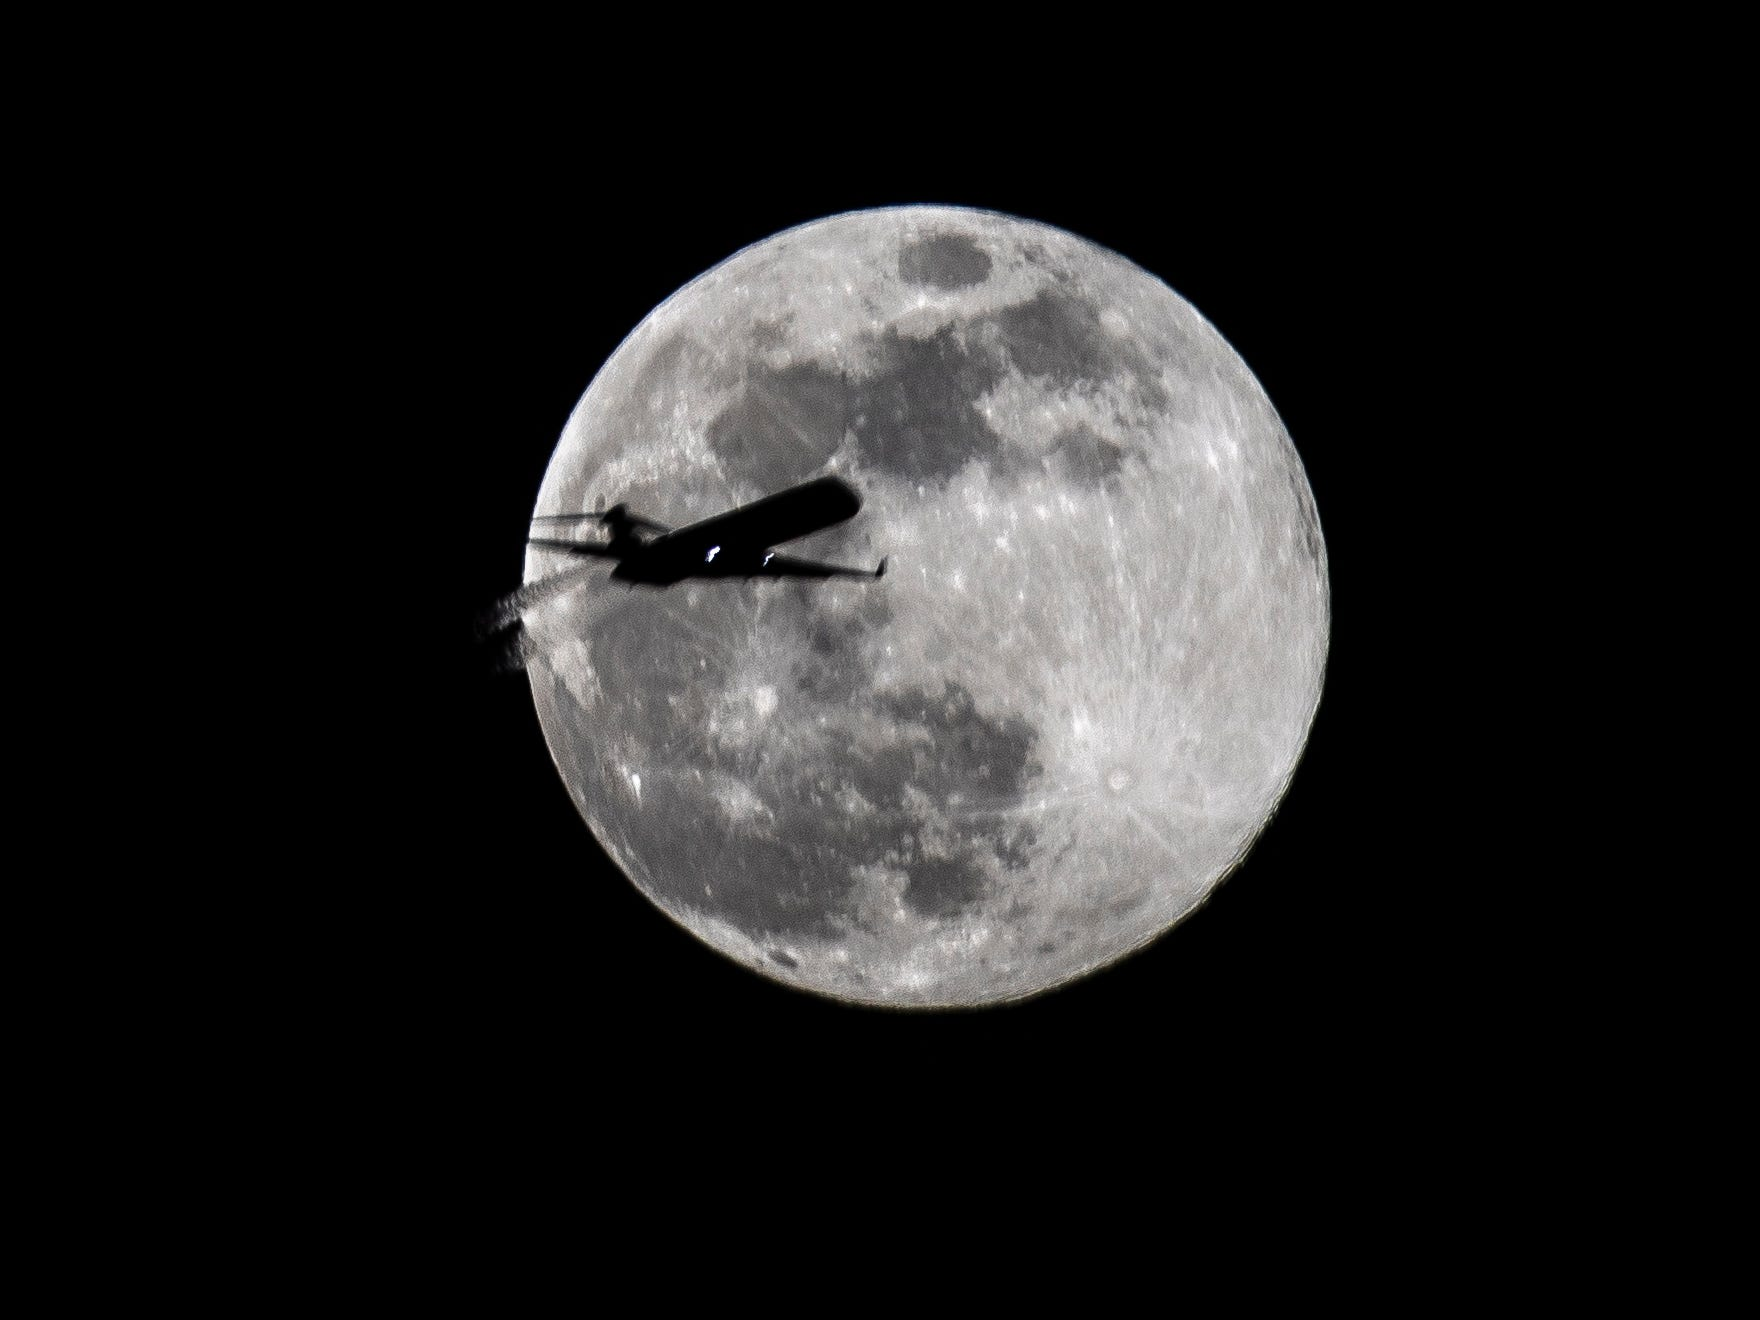 A plane passes in front of the 'Super Worm Moon' reaching its peak on the first day of spring in Frankfurt am Main, Germany on March 20, 2019. Its name comes from northern Native American tribes that said this moon signaled the thawing of winter snow and the reappearance of earthworms in the soil.